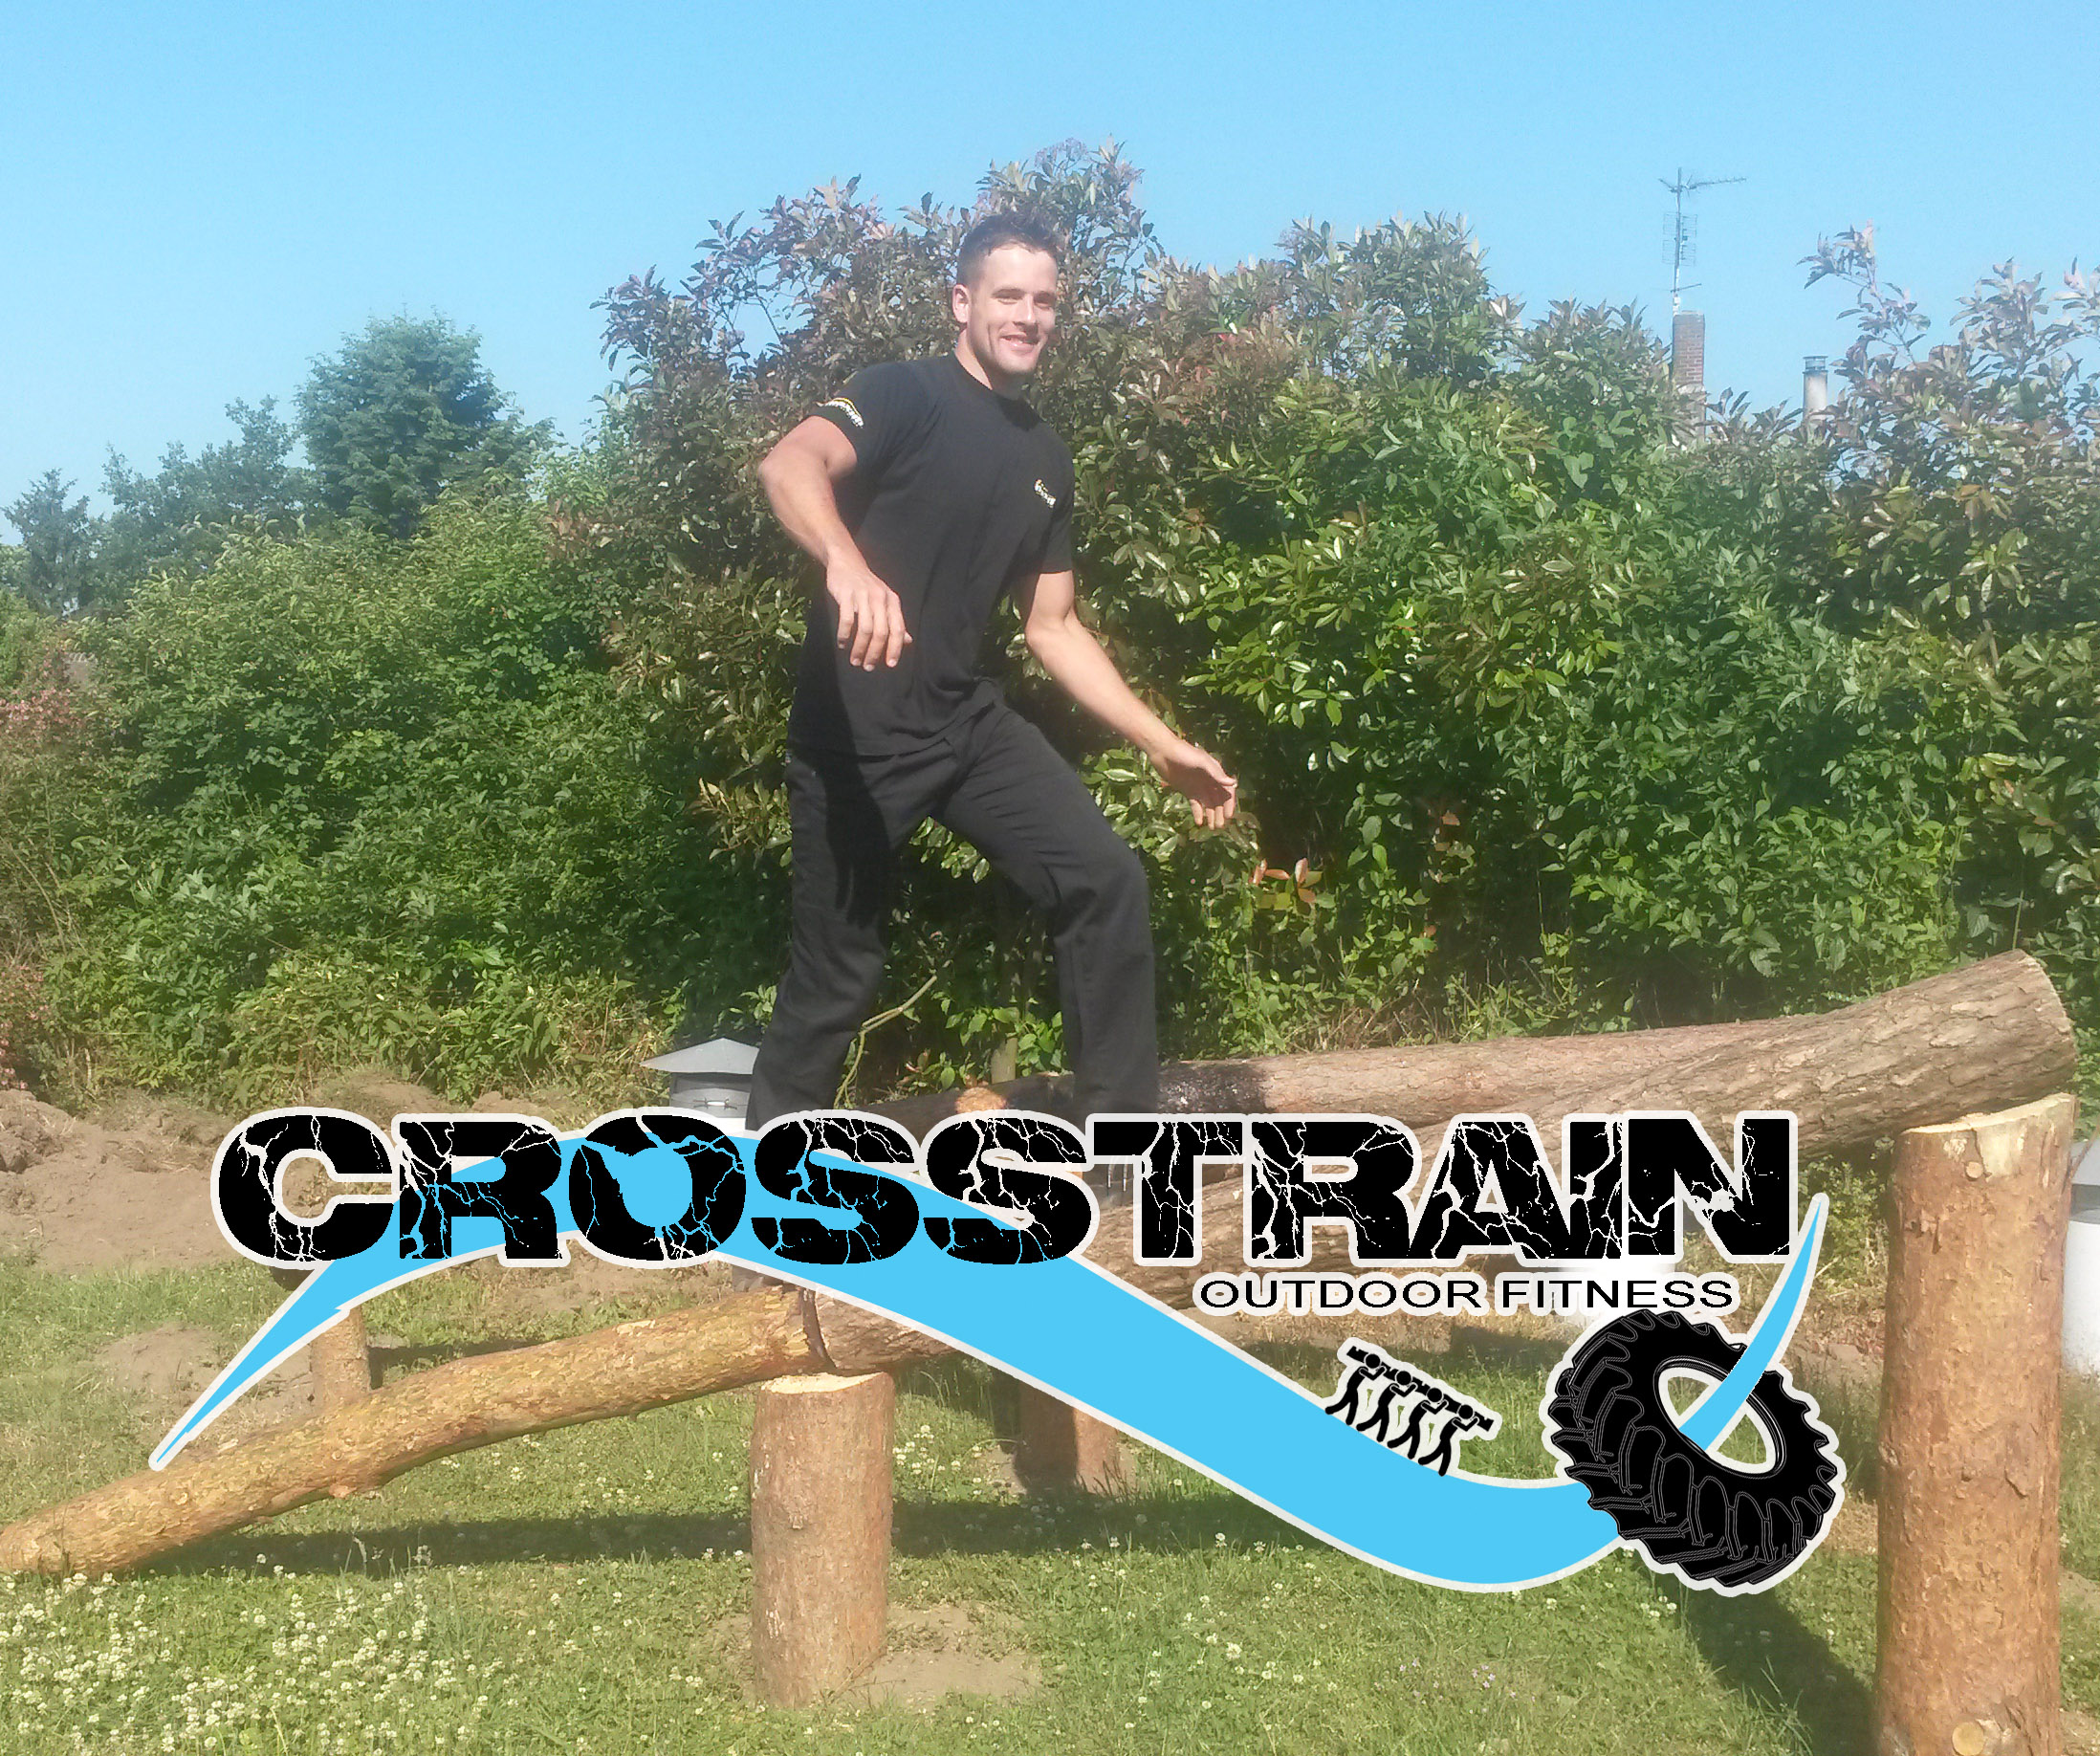 Crosstrain outdoor fitness